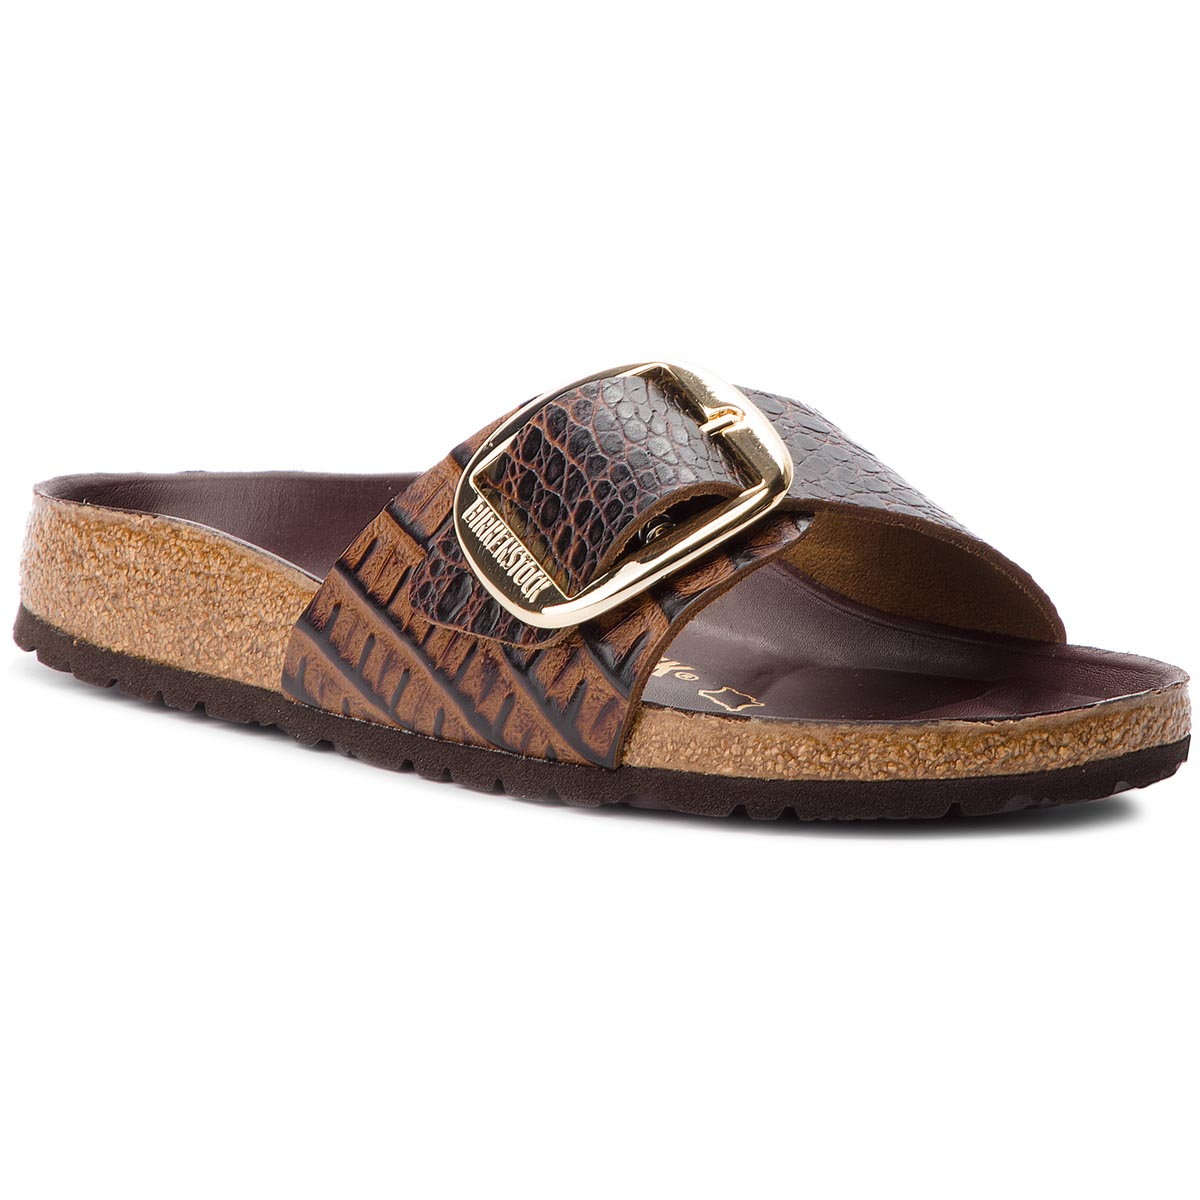 Klapki BIRKENSTOCK - Madrid Big Buckle 1010769 Gator Brown